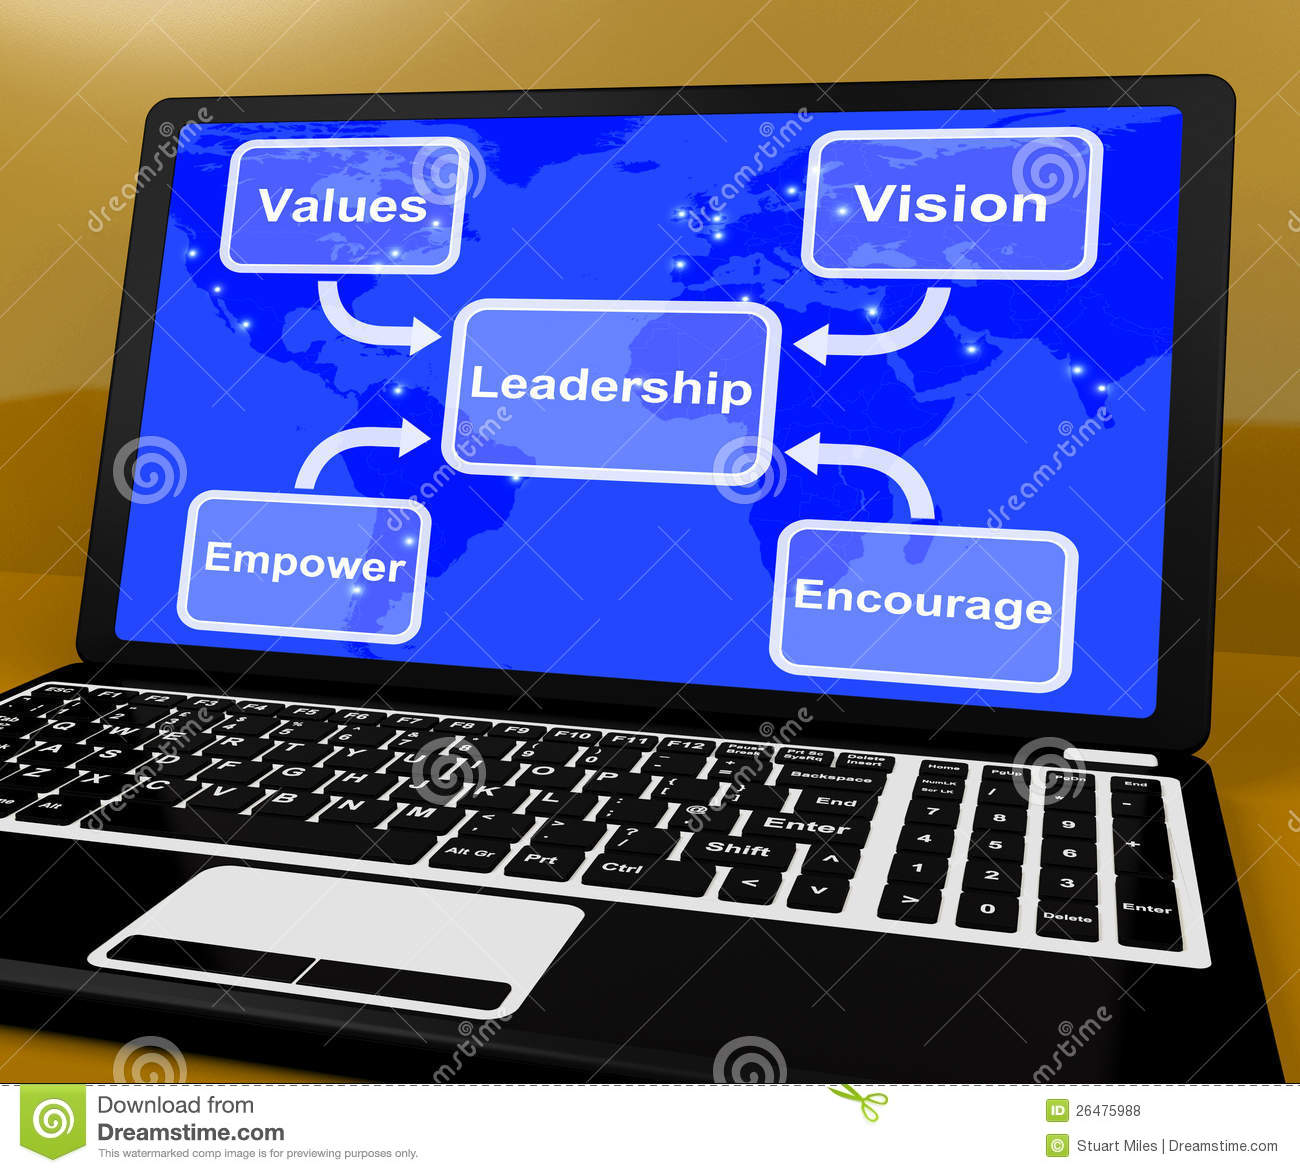 Leadership diagram on computer showing vision and values stock leadership diagram on computer showing vision and values ccuart Images